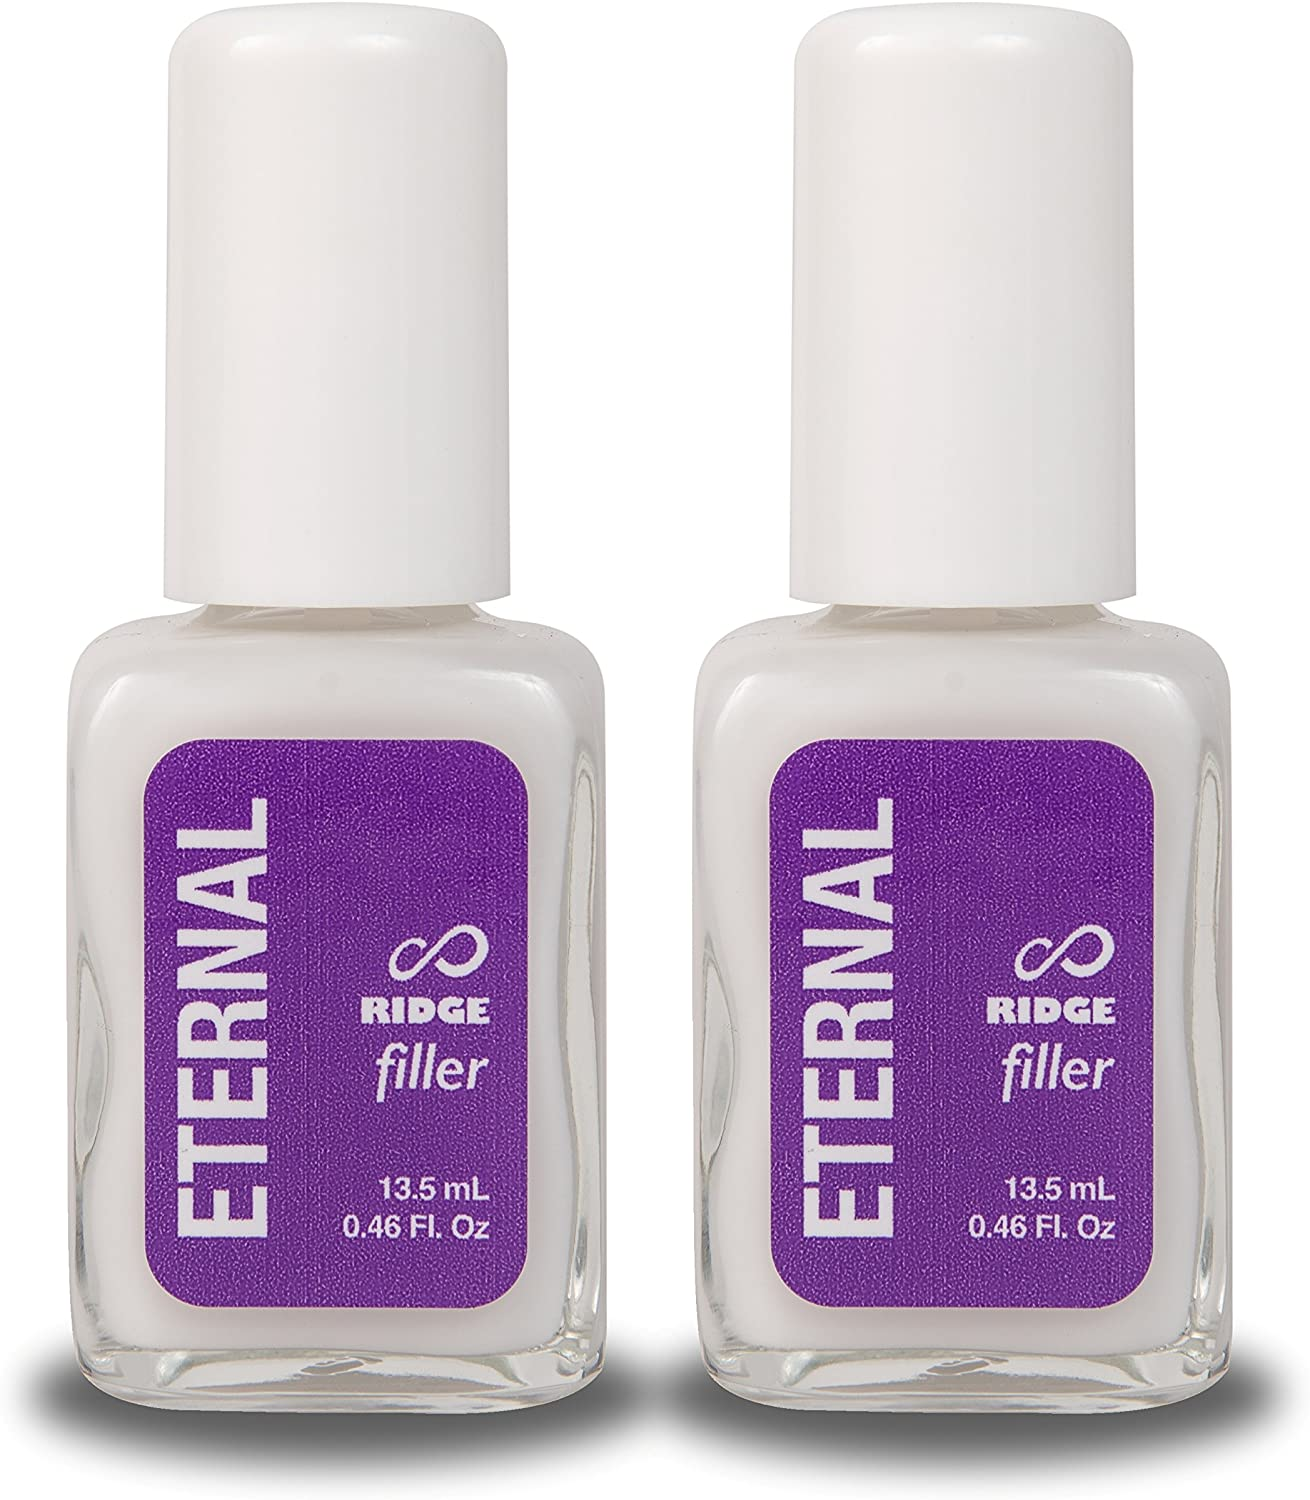 Eternal Ridge Filler Gel – Clear Nail Polish Base Coat and Primer for Smooth Nails - 2 Pack